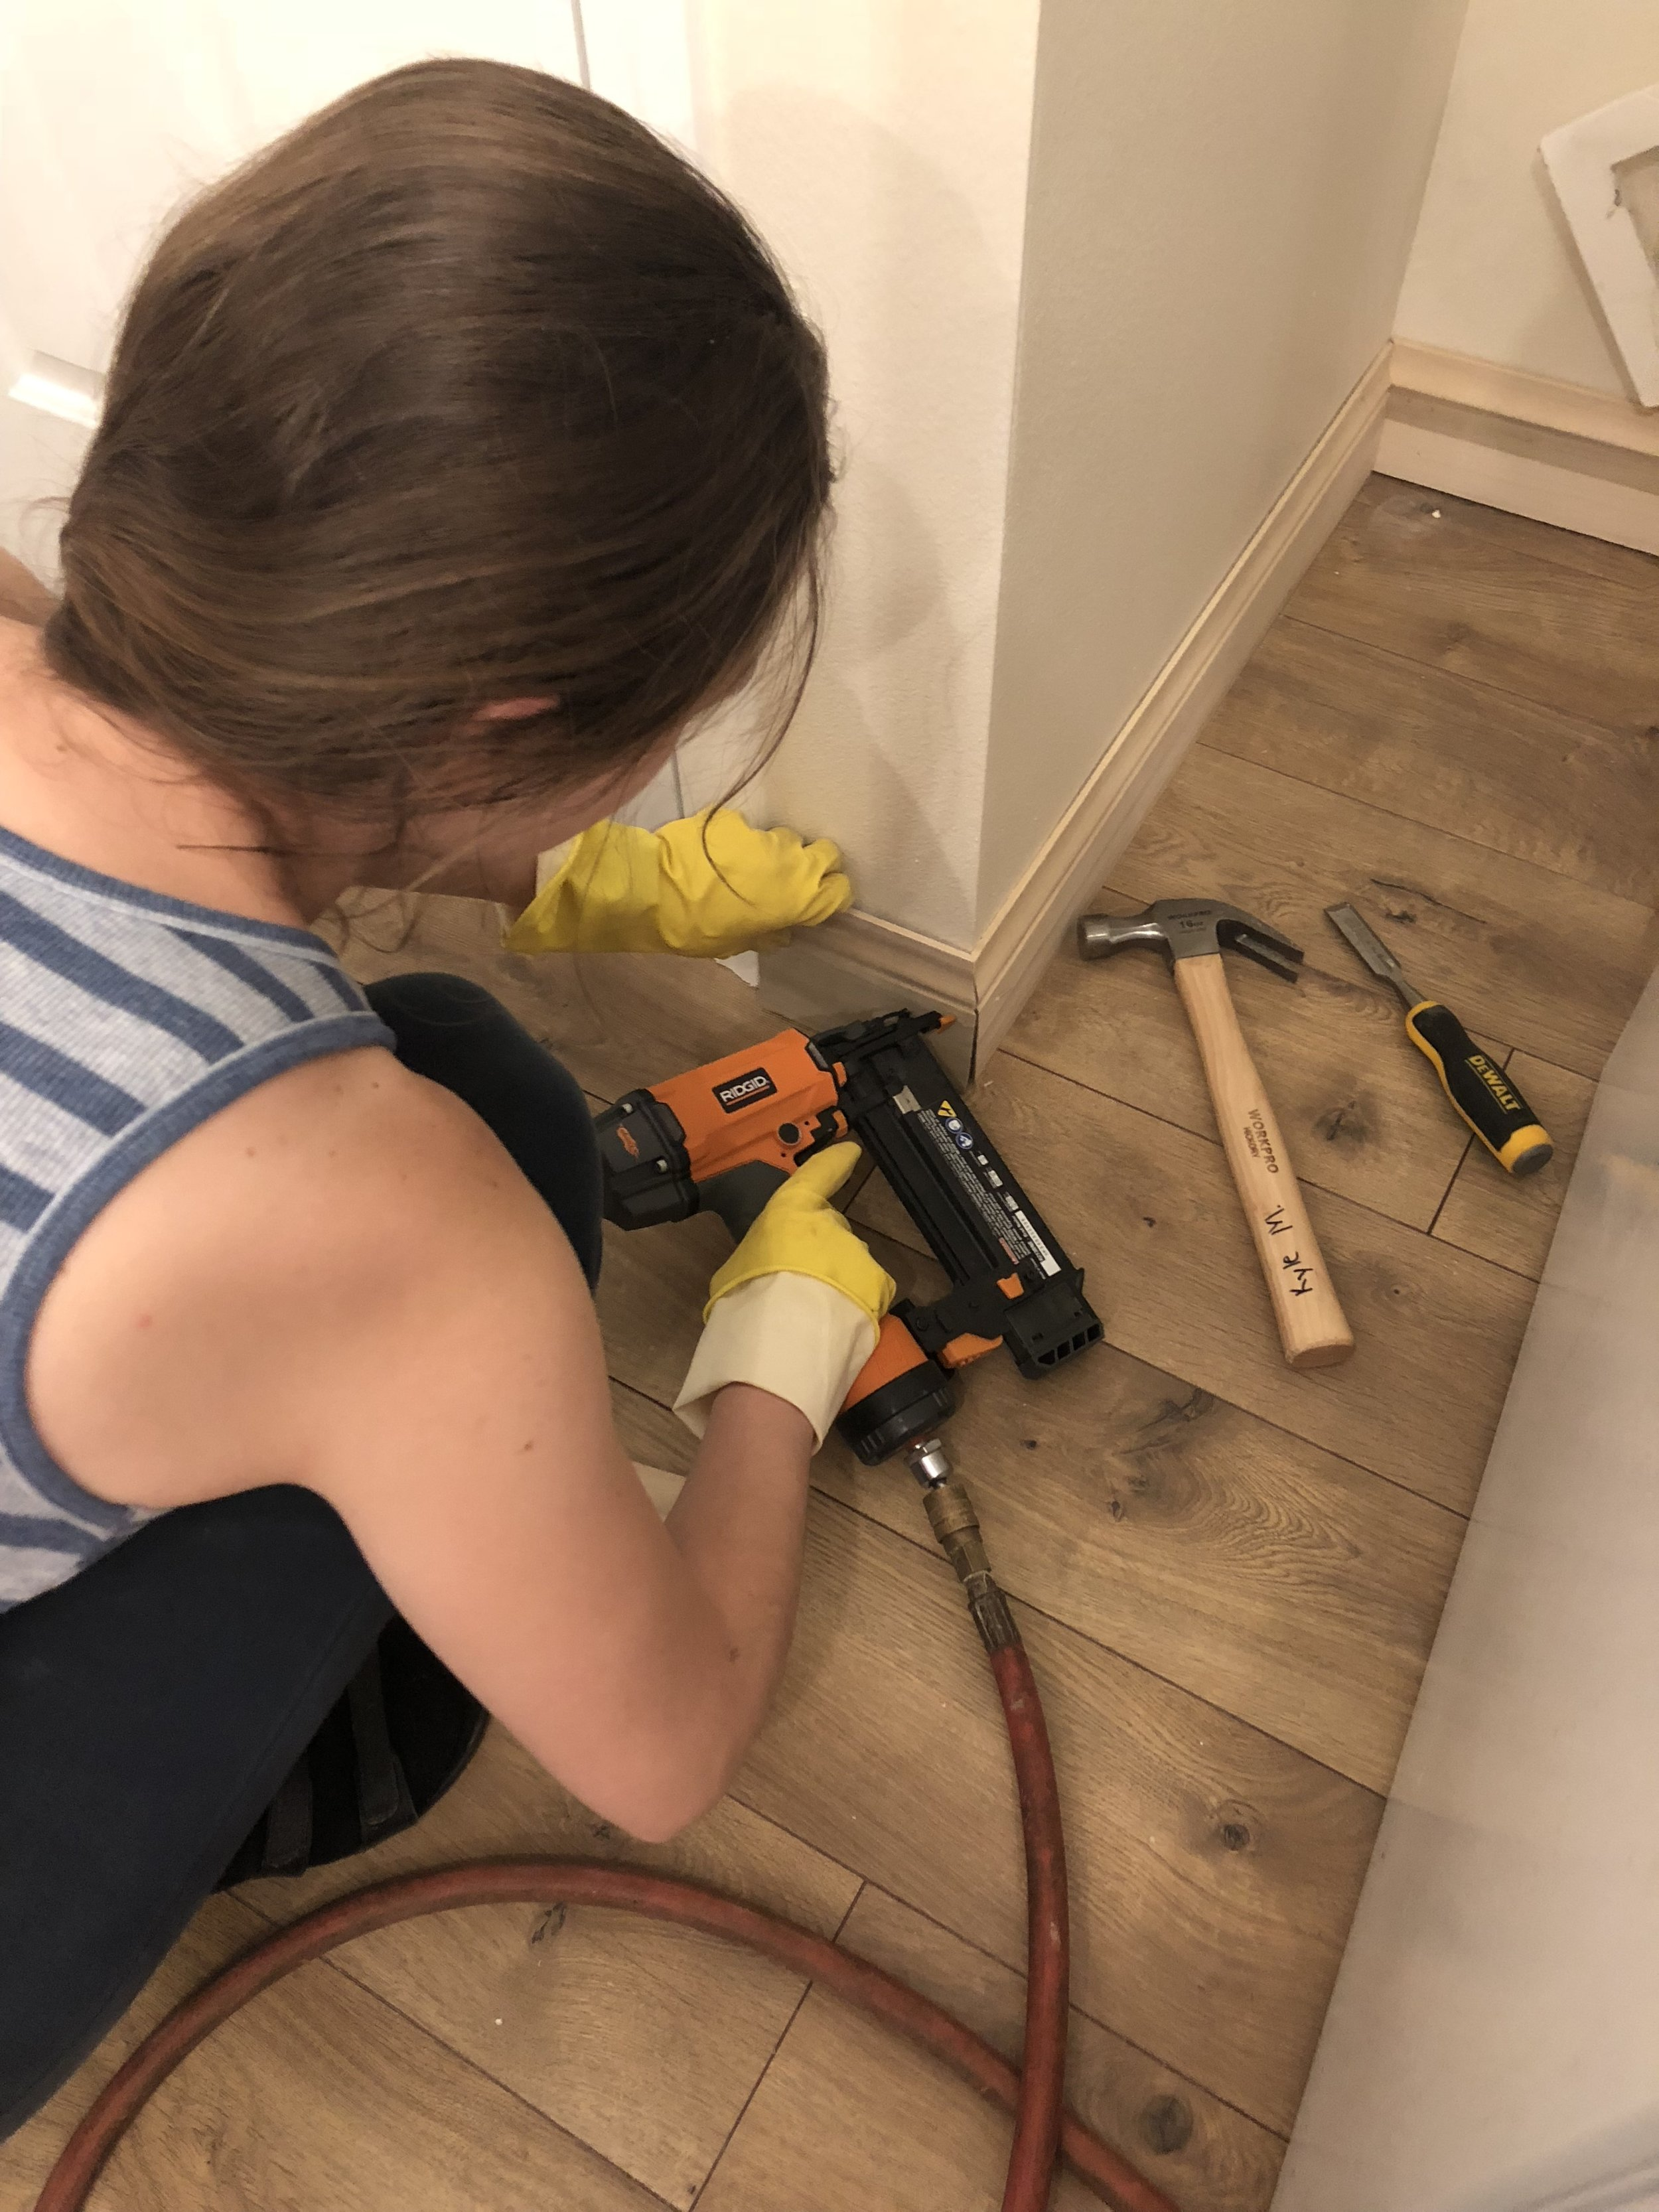 It was fun to learn some new things. Out with the old flooring and base boards and in with the new! We replaced the appliances and most of the light fixtures as well.